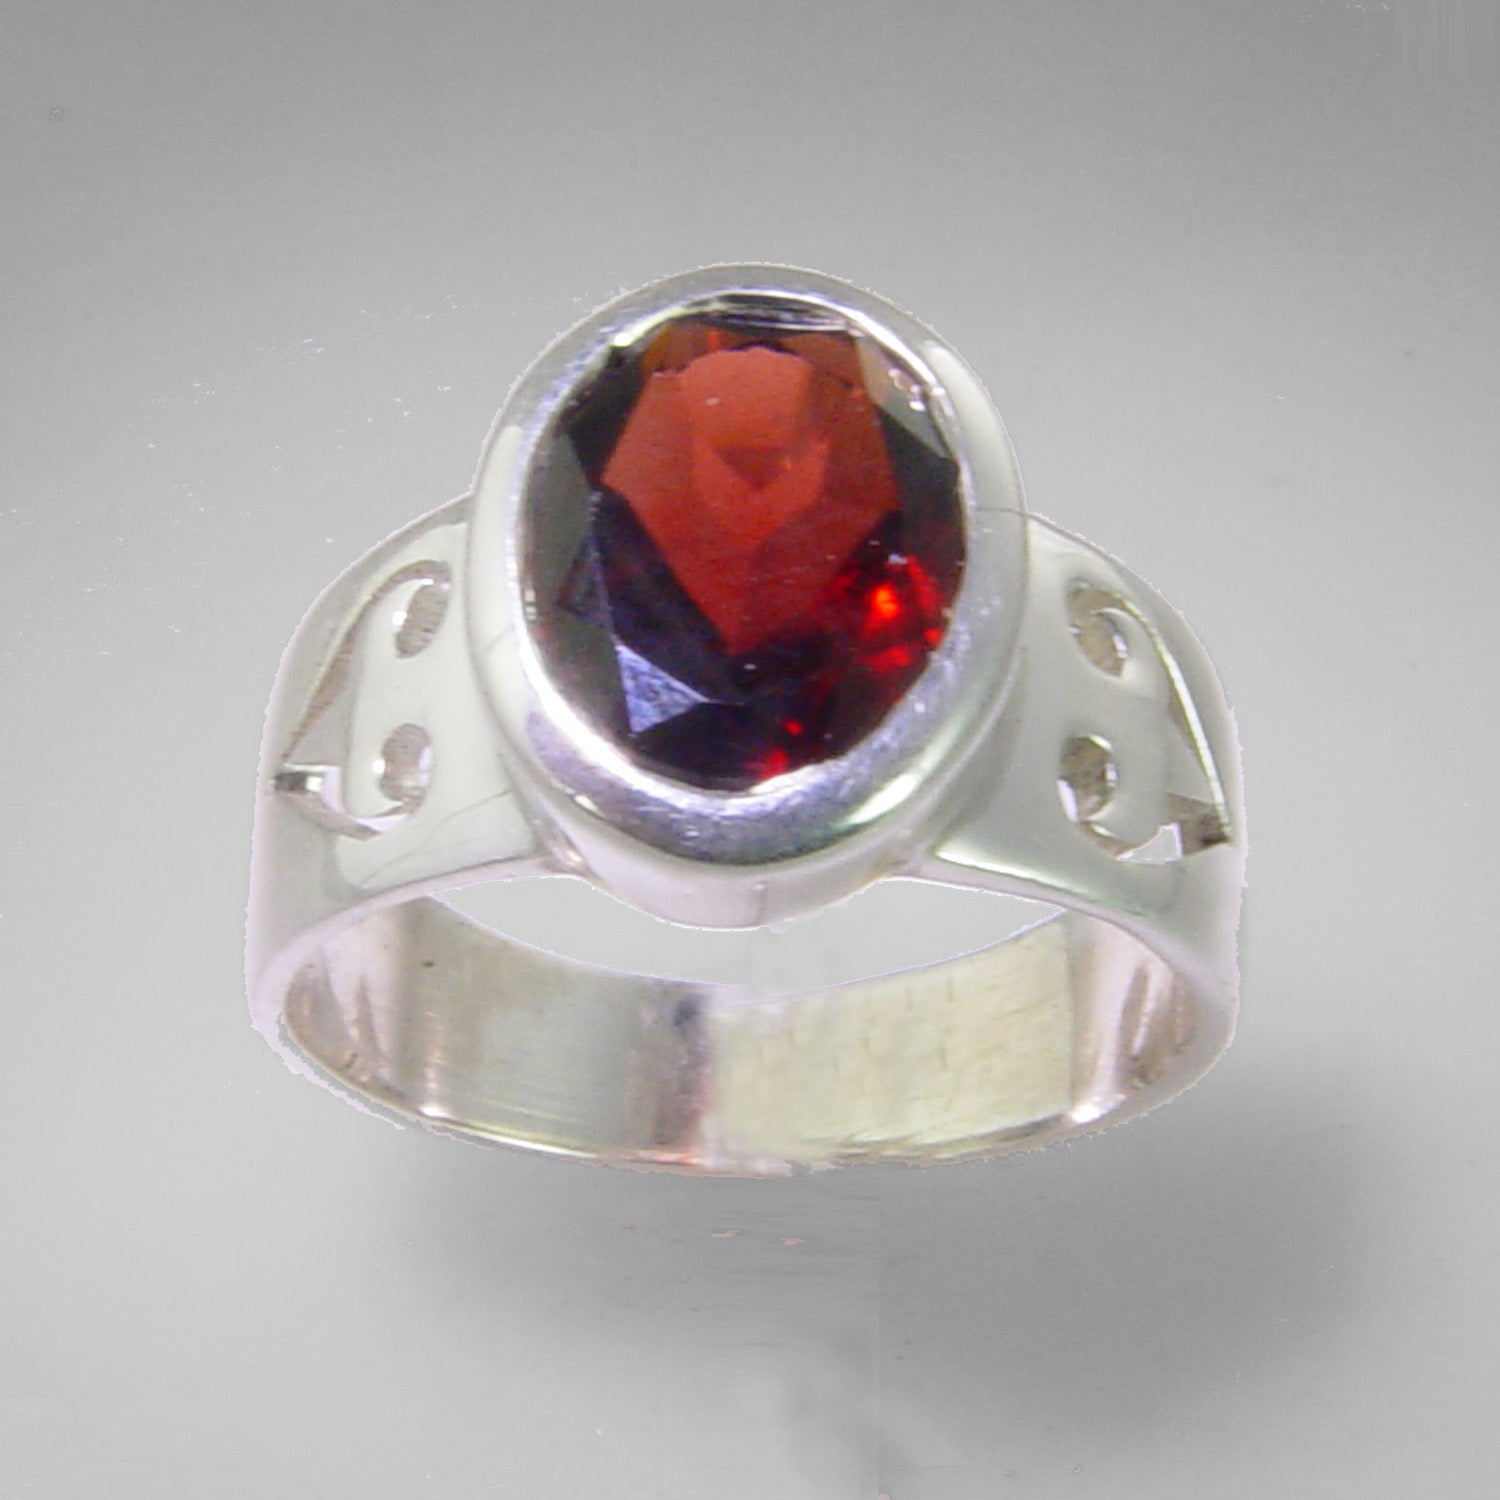 Garnet 3.36 ct Oval Sterling Silver Ring, Size 9